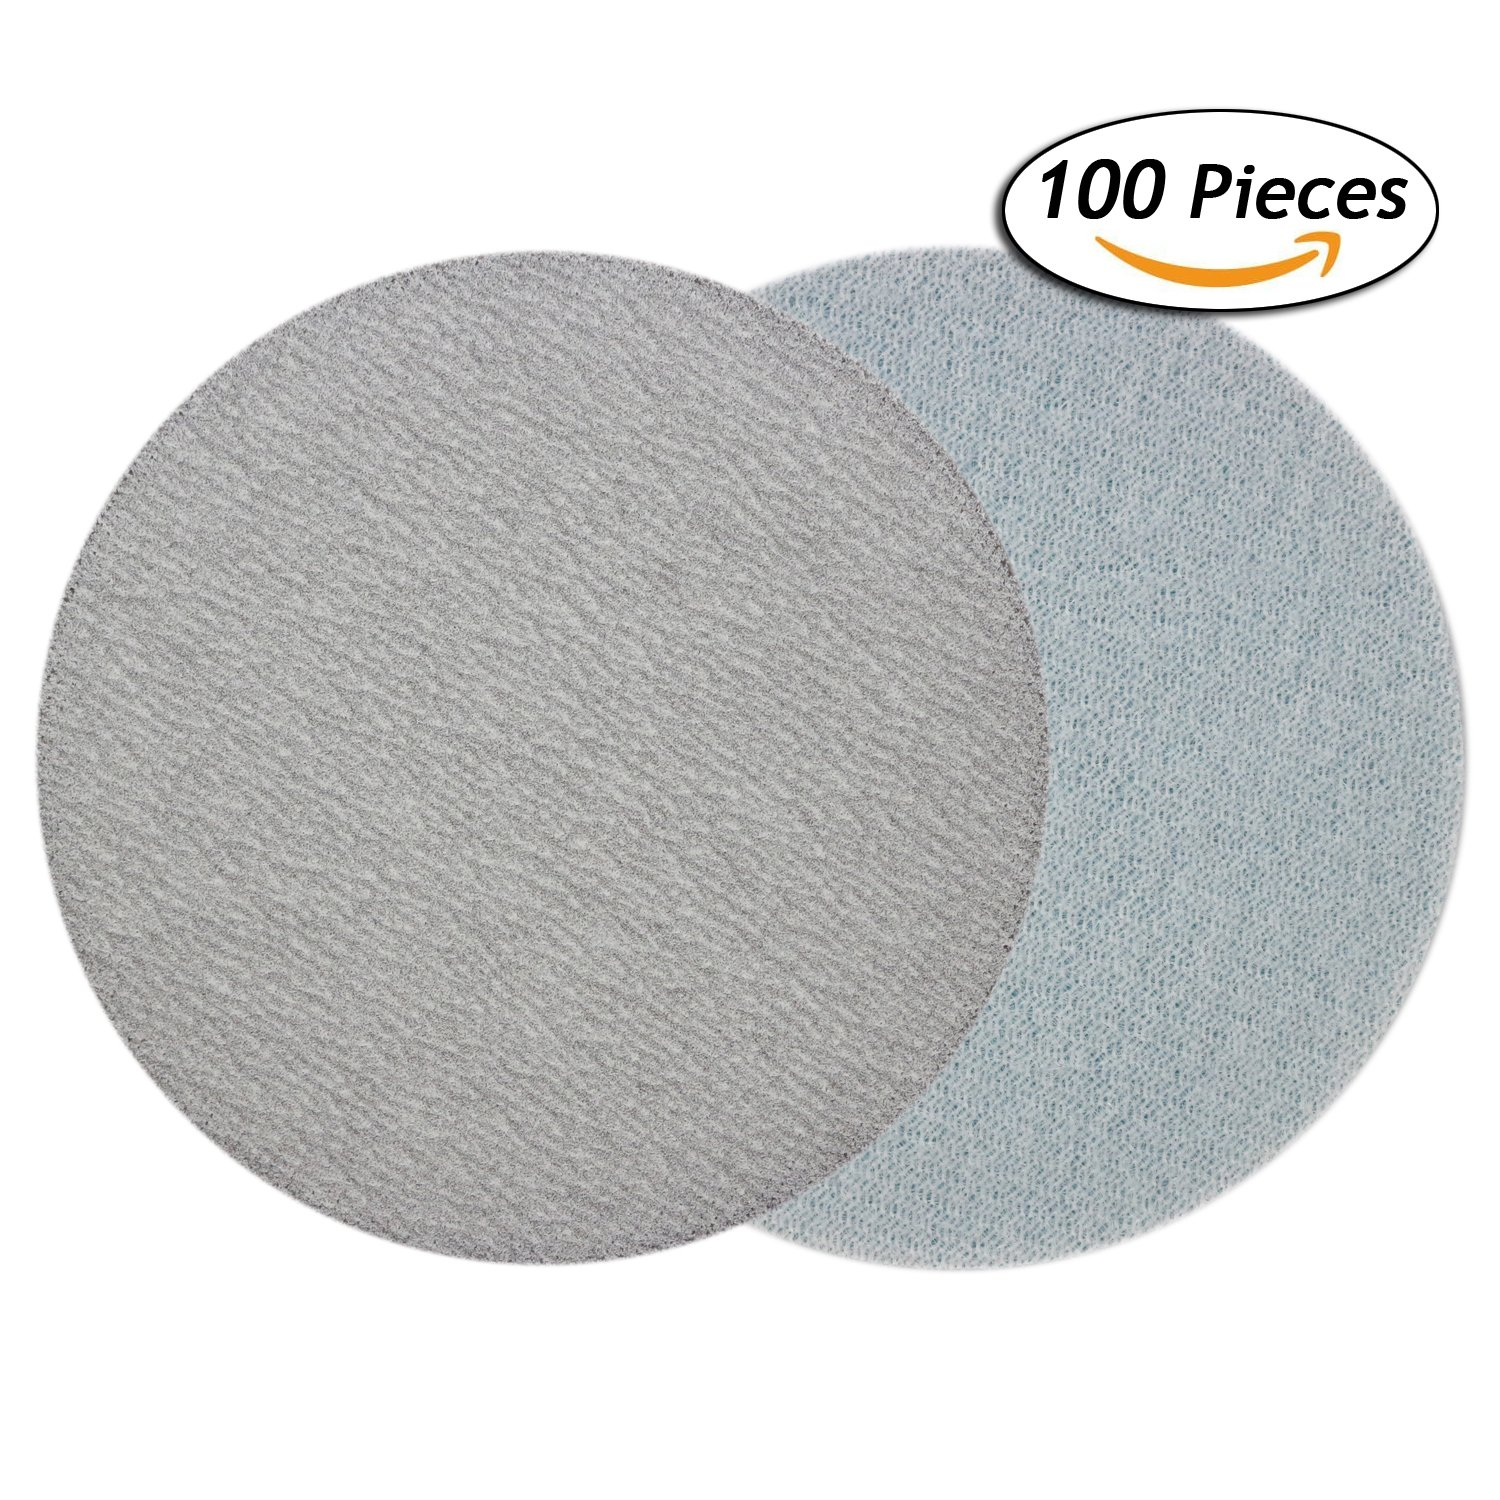 3 Inch 240 Grit Aluminum Oxide White Dry No Holes Hook and Loop Sanding Discs for 3'' Sanding Pads, 100-Pack